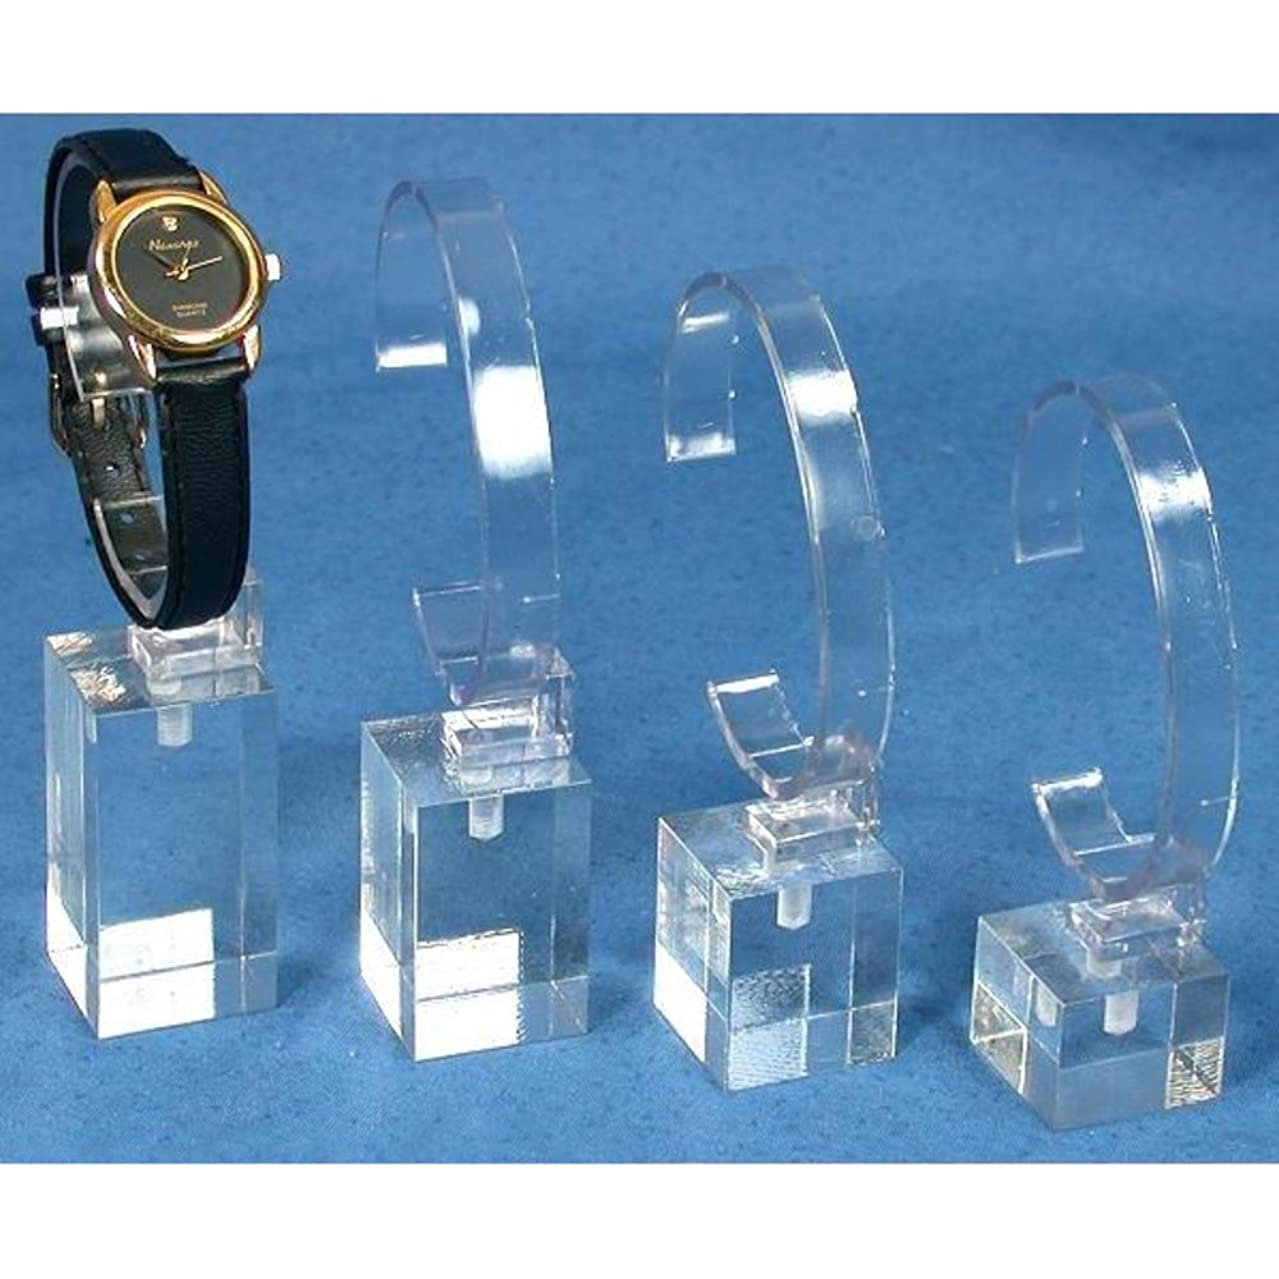 4 Watch Stands Acrylic Showcase Riser Jewelry Display